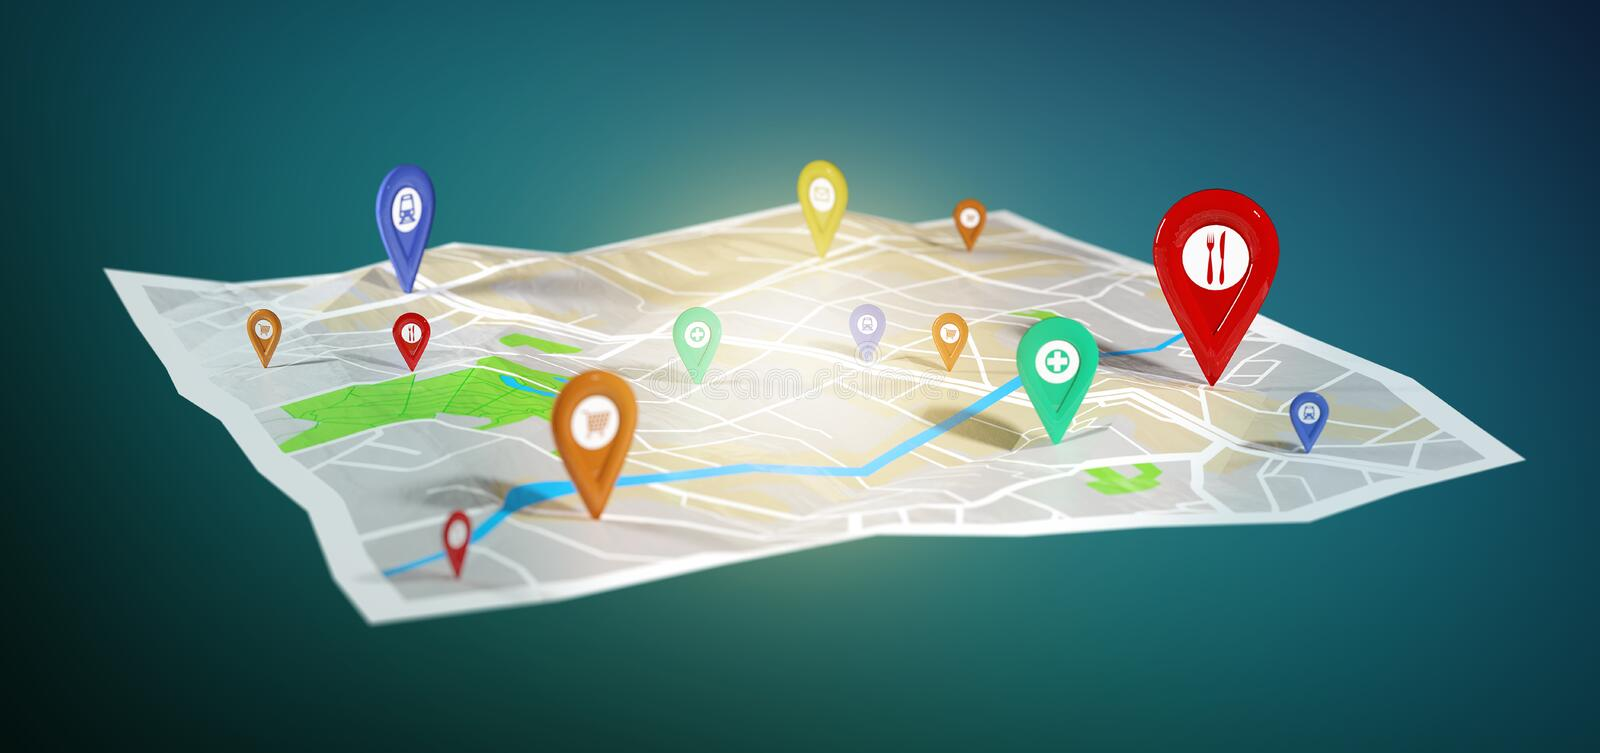 3d rendering pin holder on a map. View of a 3d rendering pin holder on a map royalty free stock images